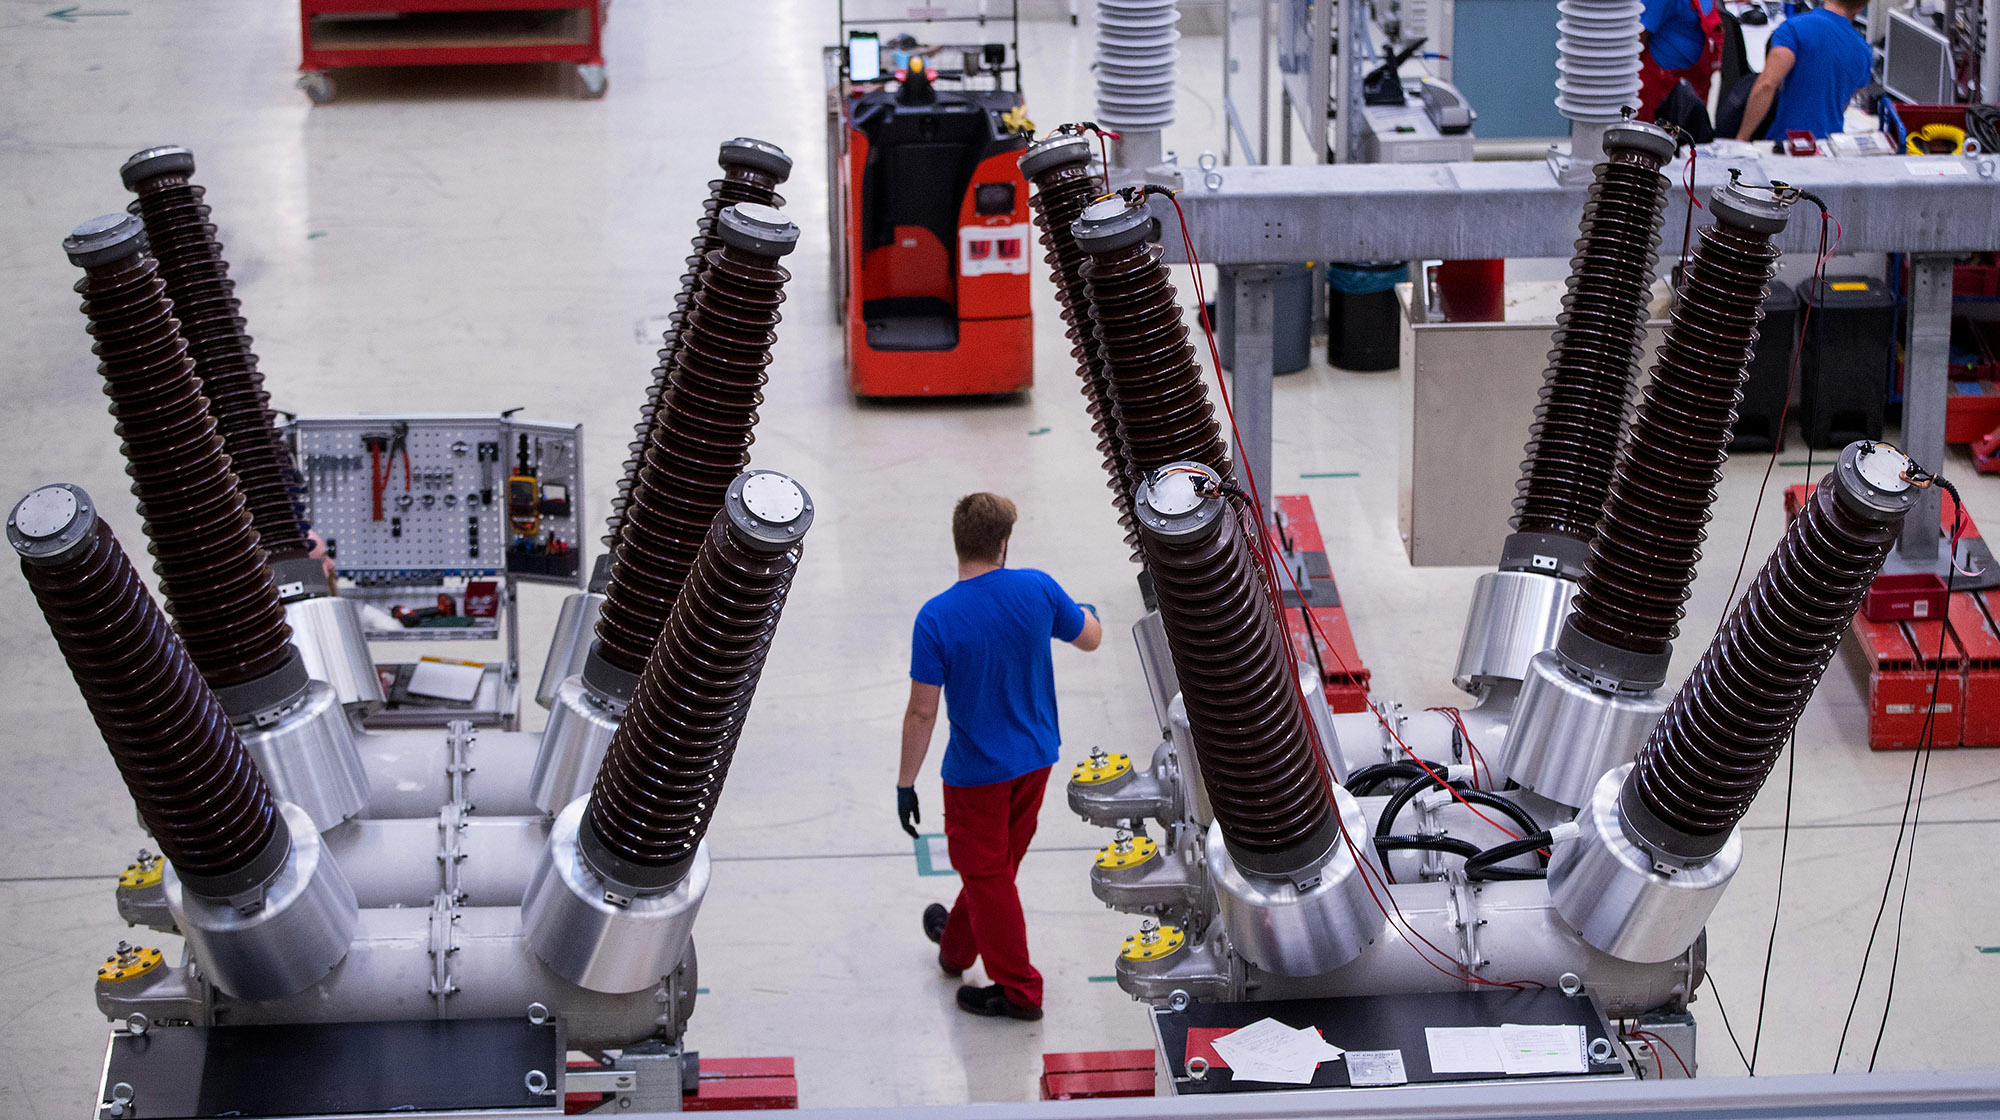 Siemens to Cut 2,700 Jobs at Energy Unit Due for Listing